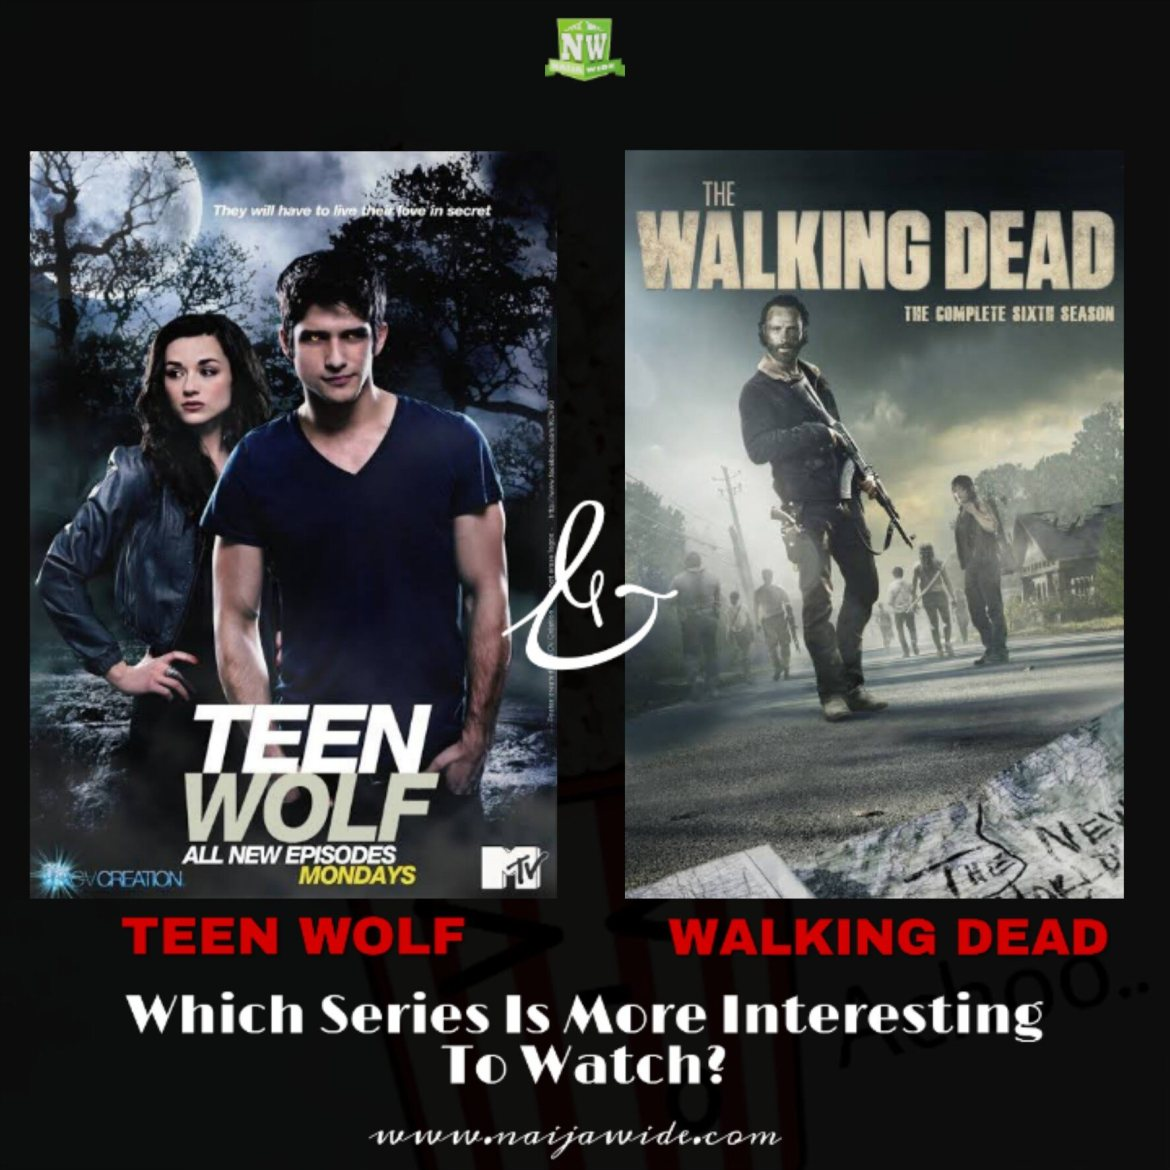 """MOVIE LOVERS!!! """"Teen wolf Or Walking Dead"""" Which Series Is More Interesting To Watch?"""